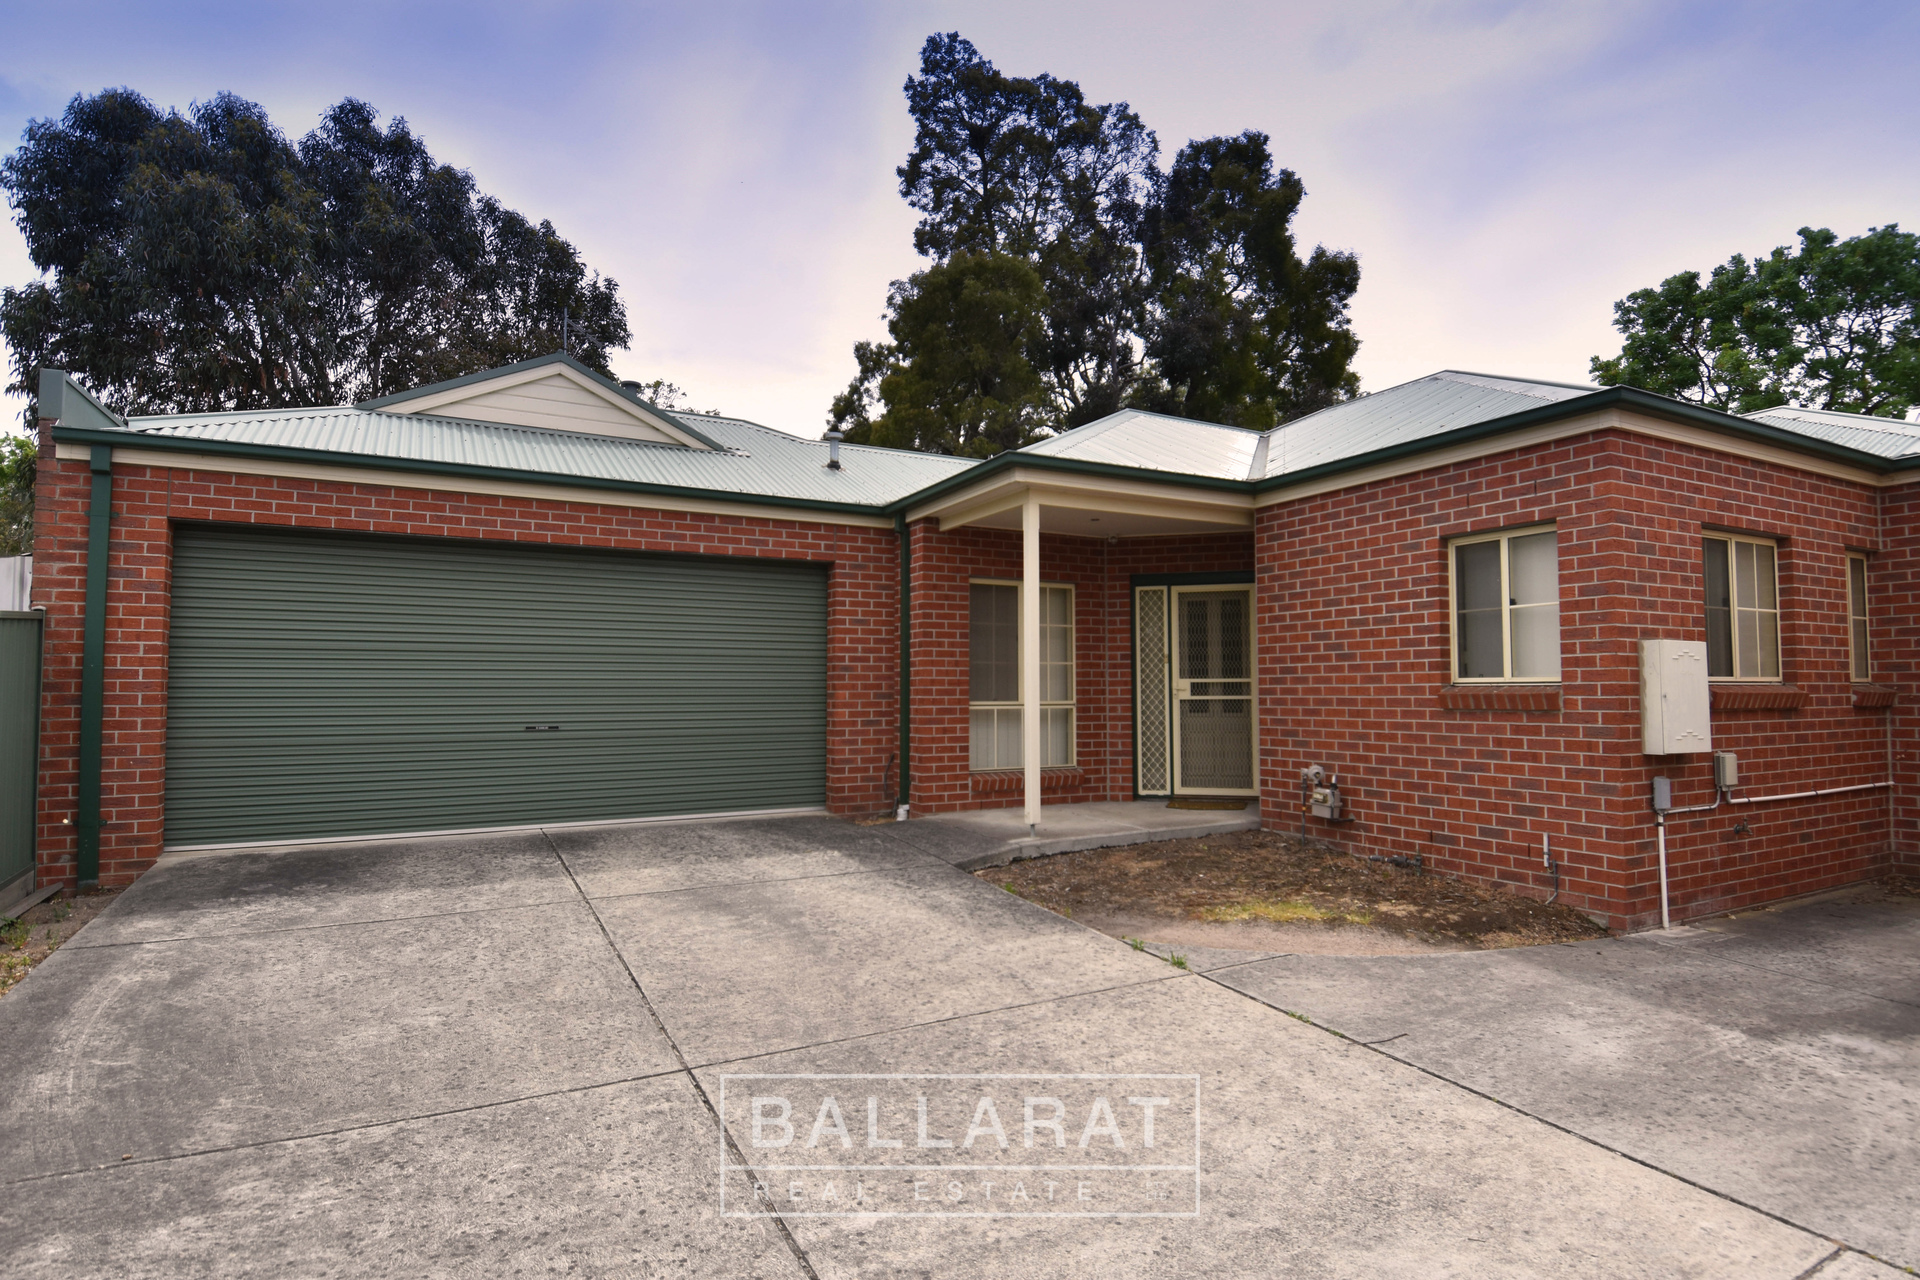 4/417 Havelock Street Ballarat North